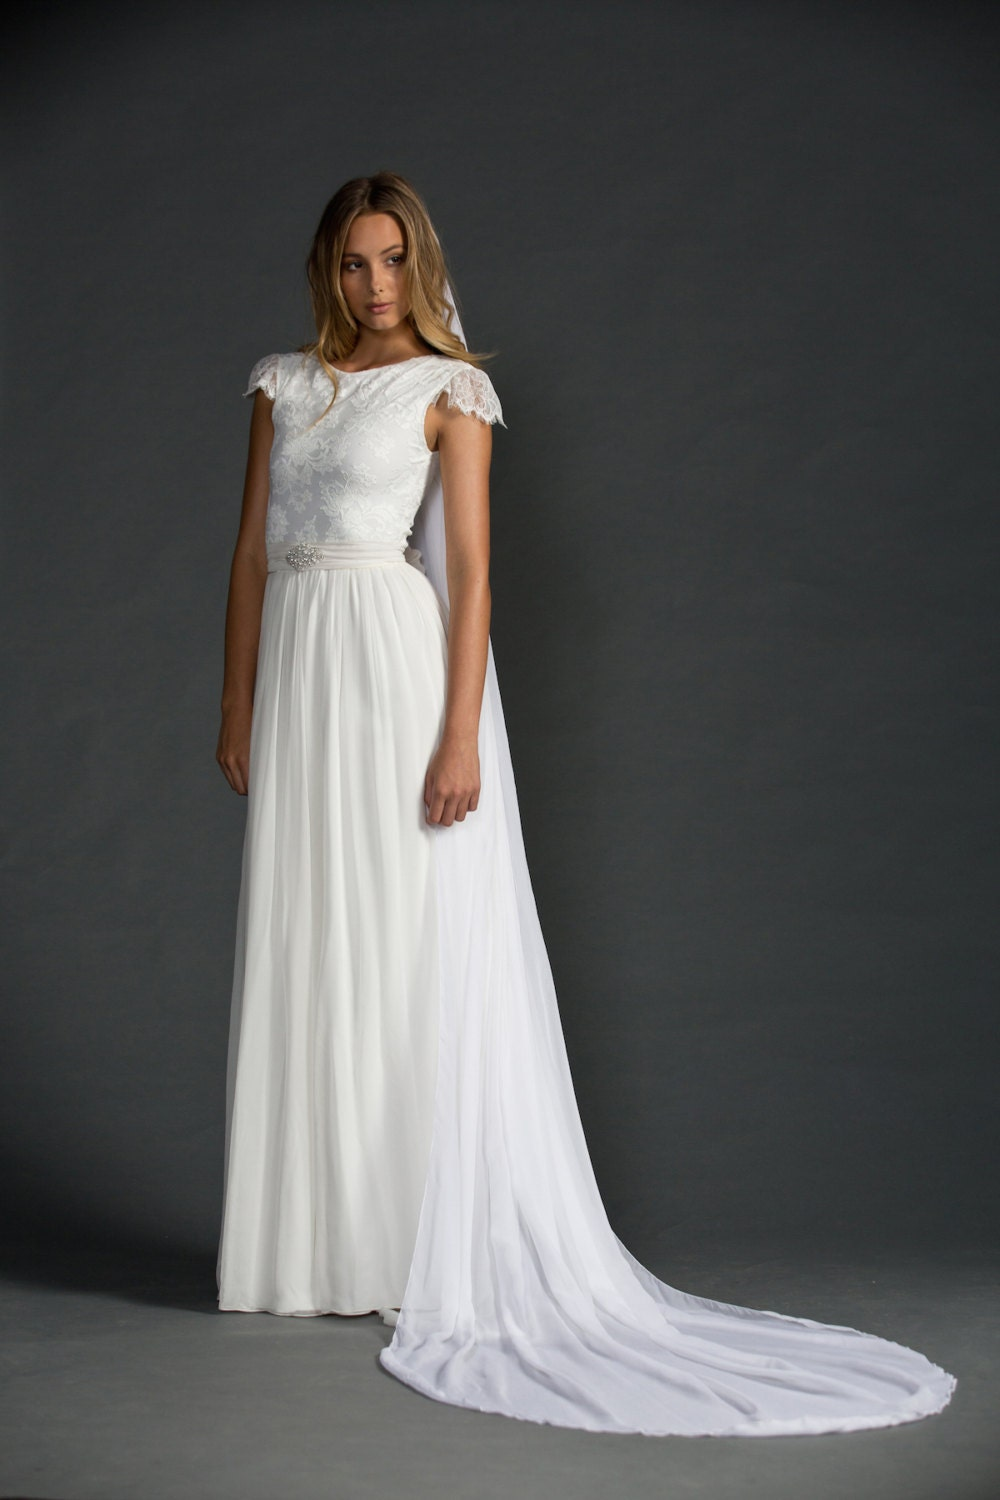 French Lace Low Back Wedding Dress French Lace Wedding Dress